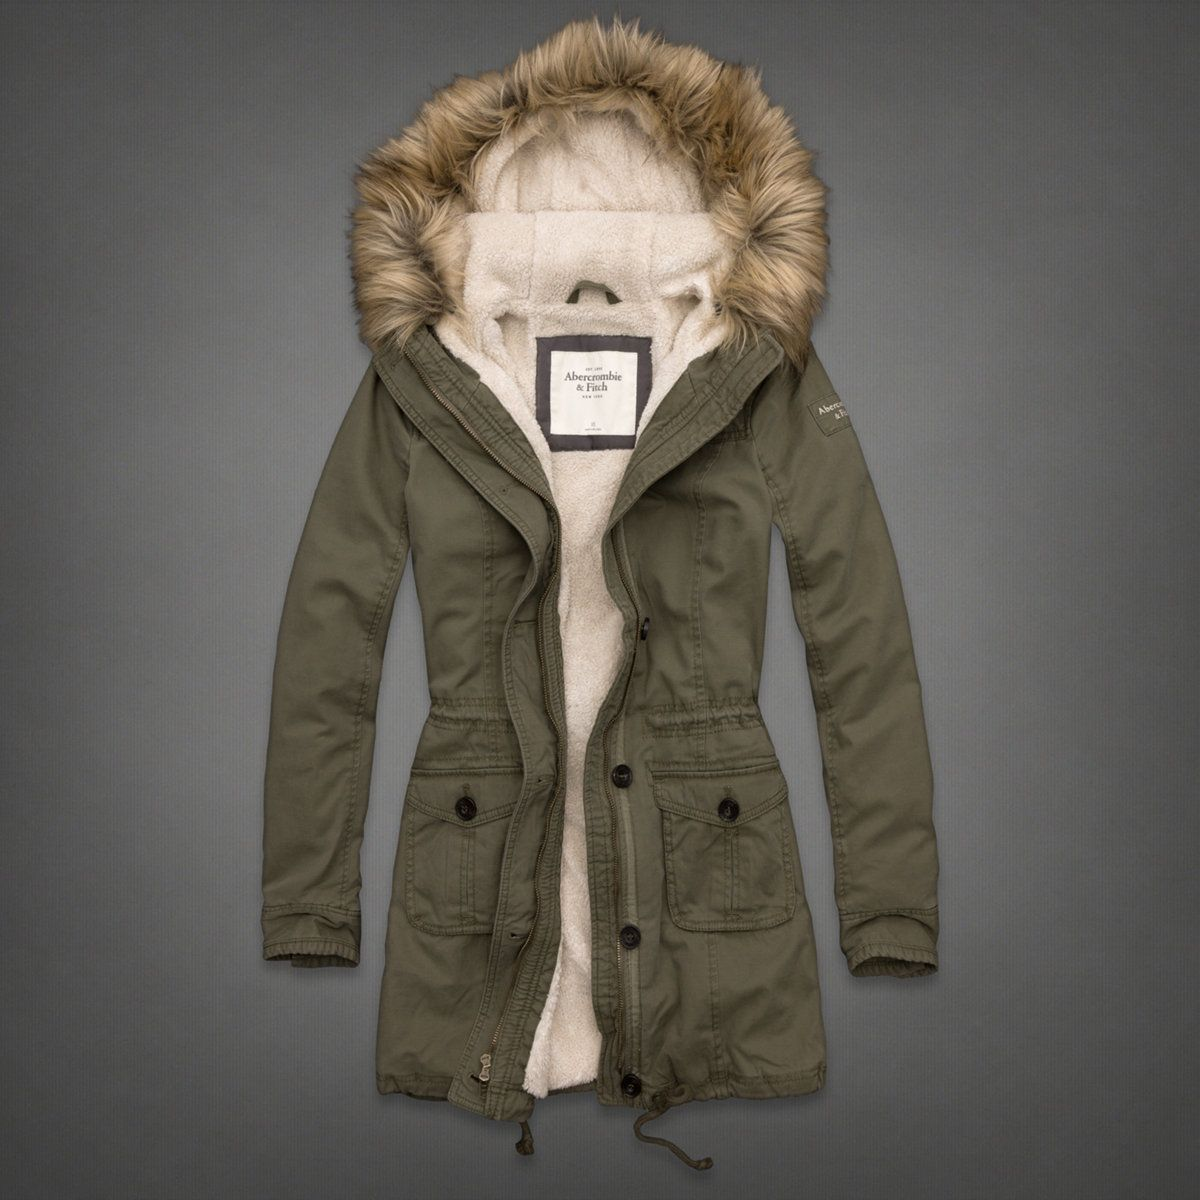 Abercrombie Accessories Abercrombie Accessories Abercrombie Womens Abercrombie Couple Abercrombie Womens: Womens Chelsea Parka